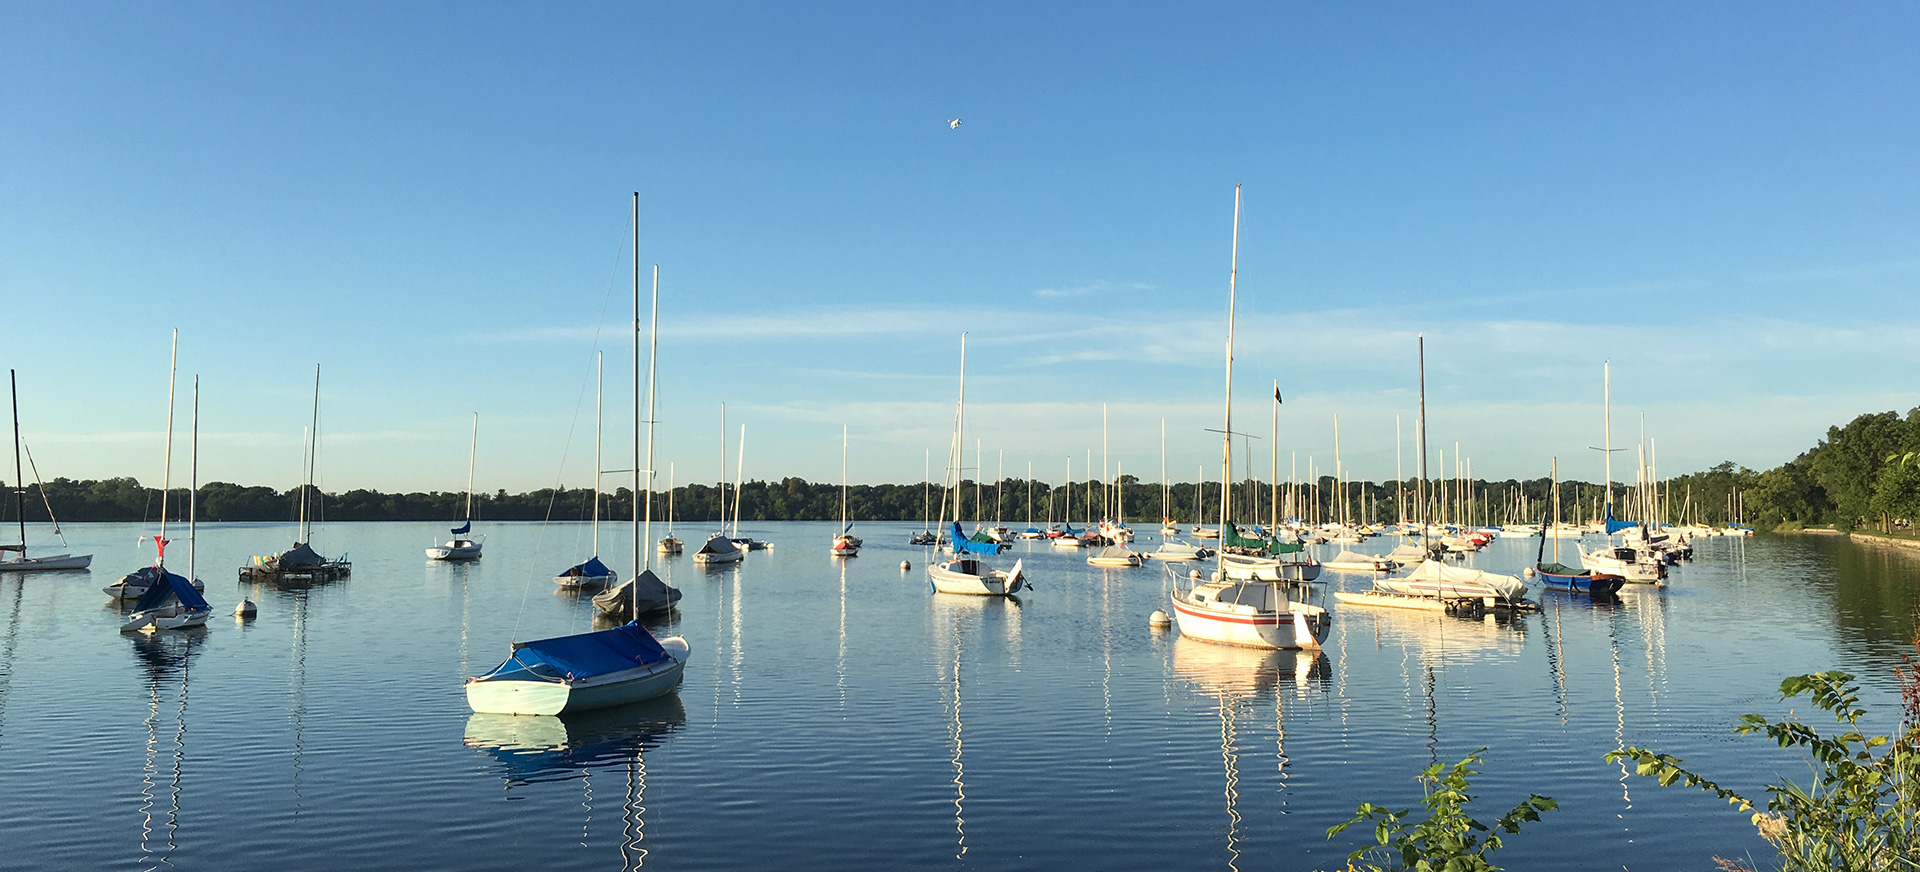 Our drone flying high above the sailboats docked at Lake Harriet.